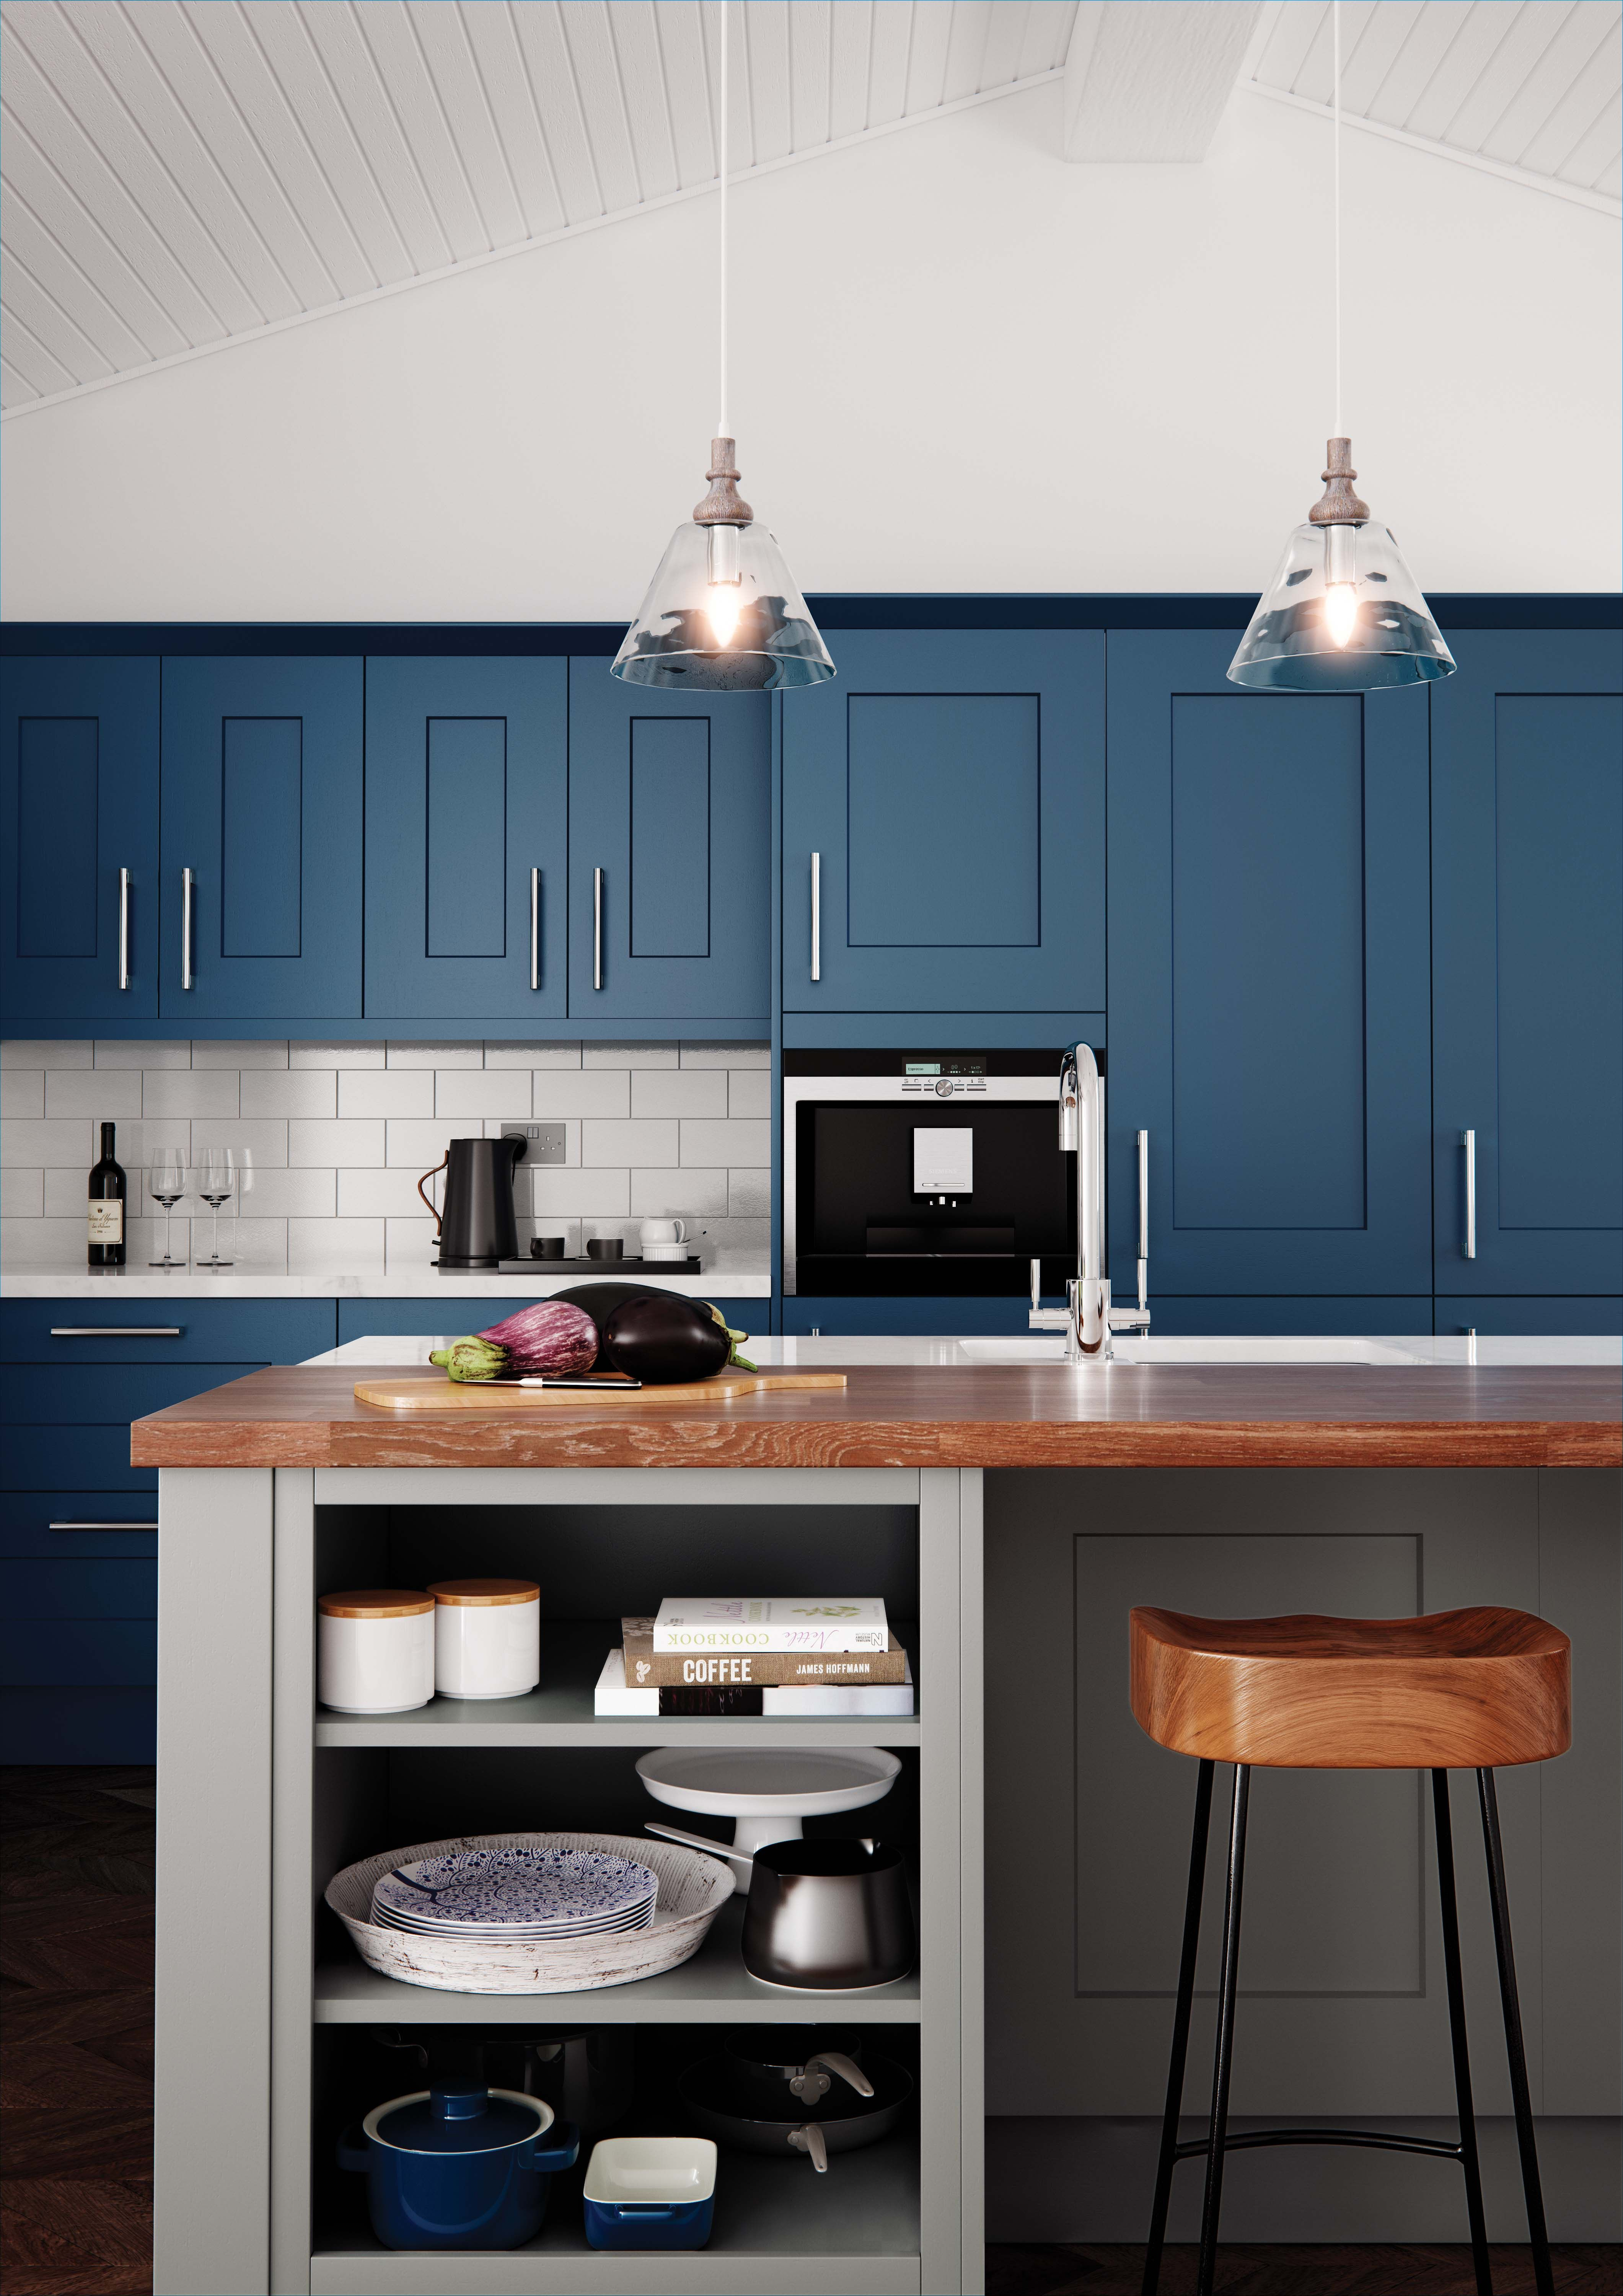 The use of open shelving in this kitchen island looks really modern ...